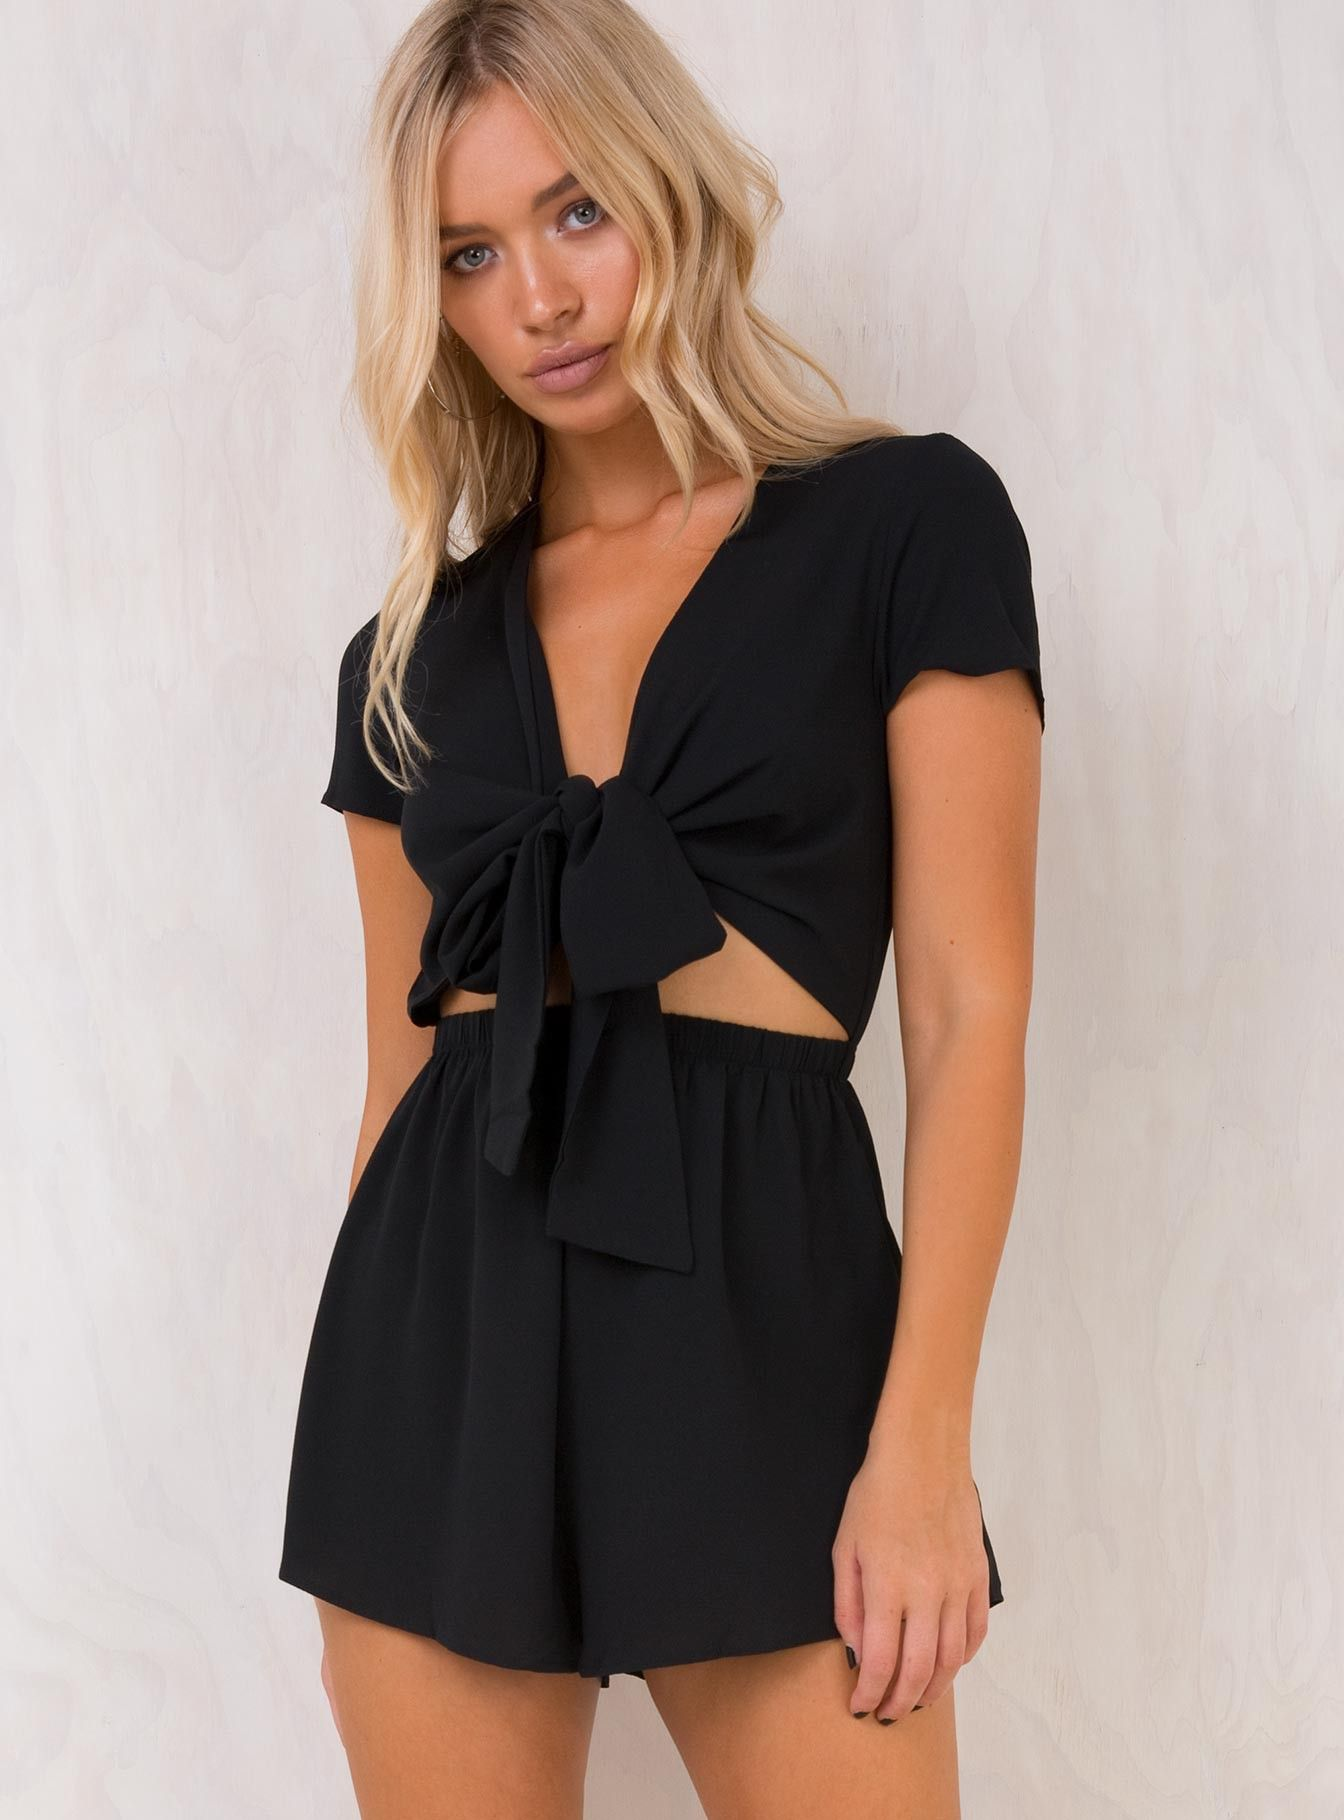 f8fab9565a0 Black+Sweet+Sahara+Tie+Front+Playsuit+-+ Tie+front+playsuit Exclusive+to+ Princess+Polly Plunge+neckline+with+tie Elasticated+waist ...